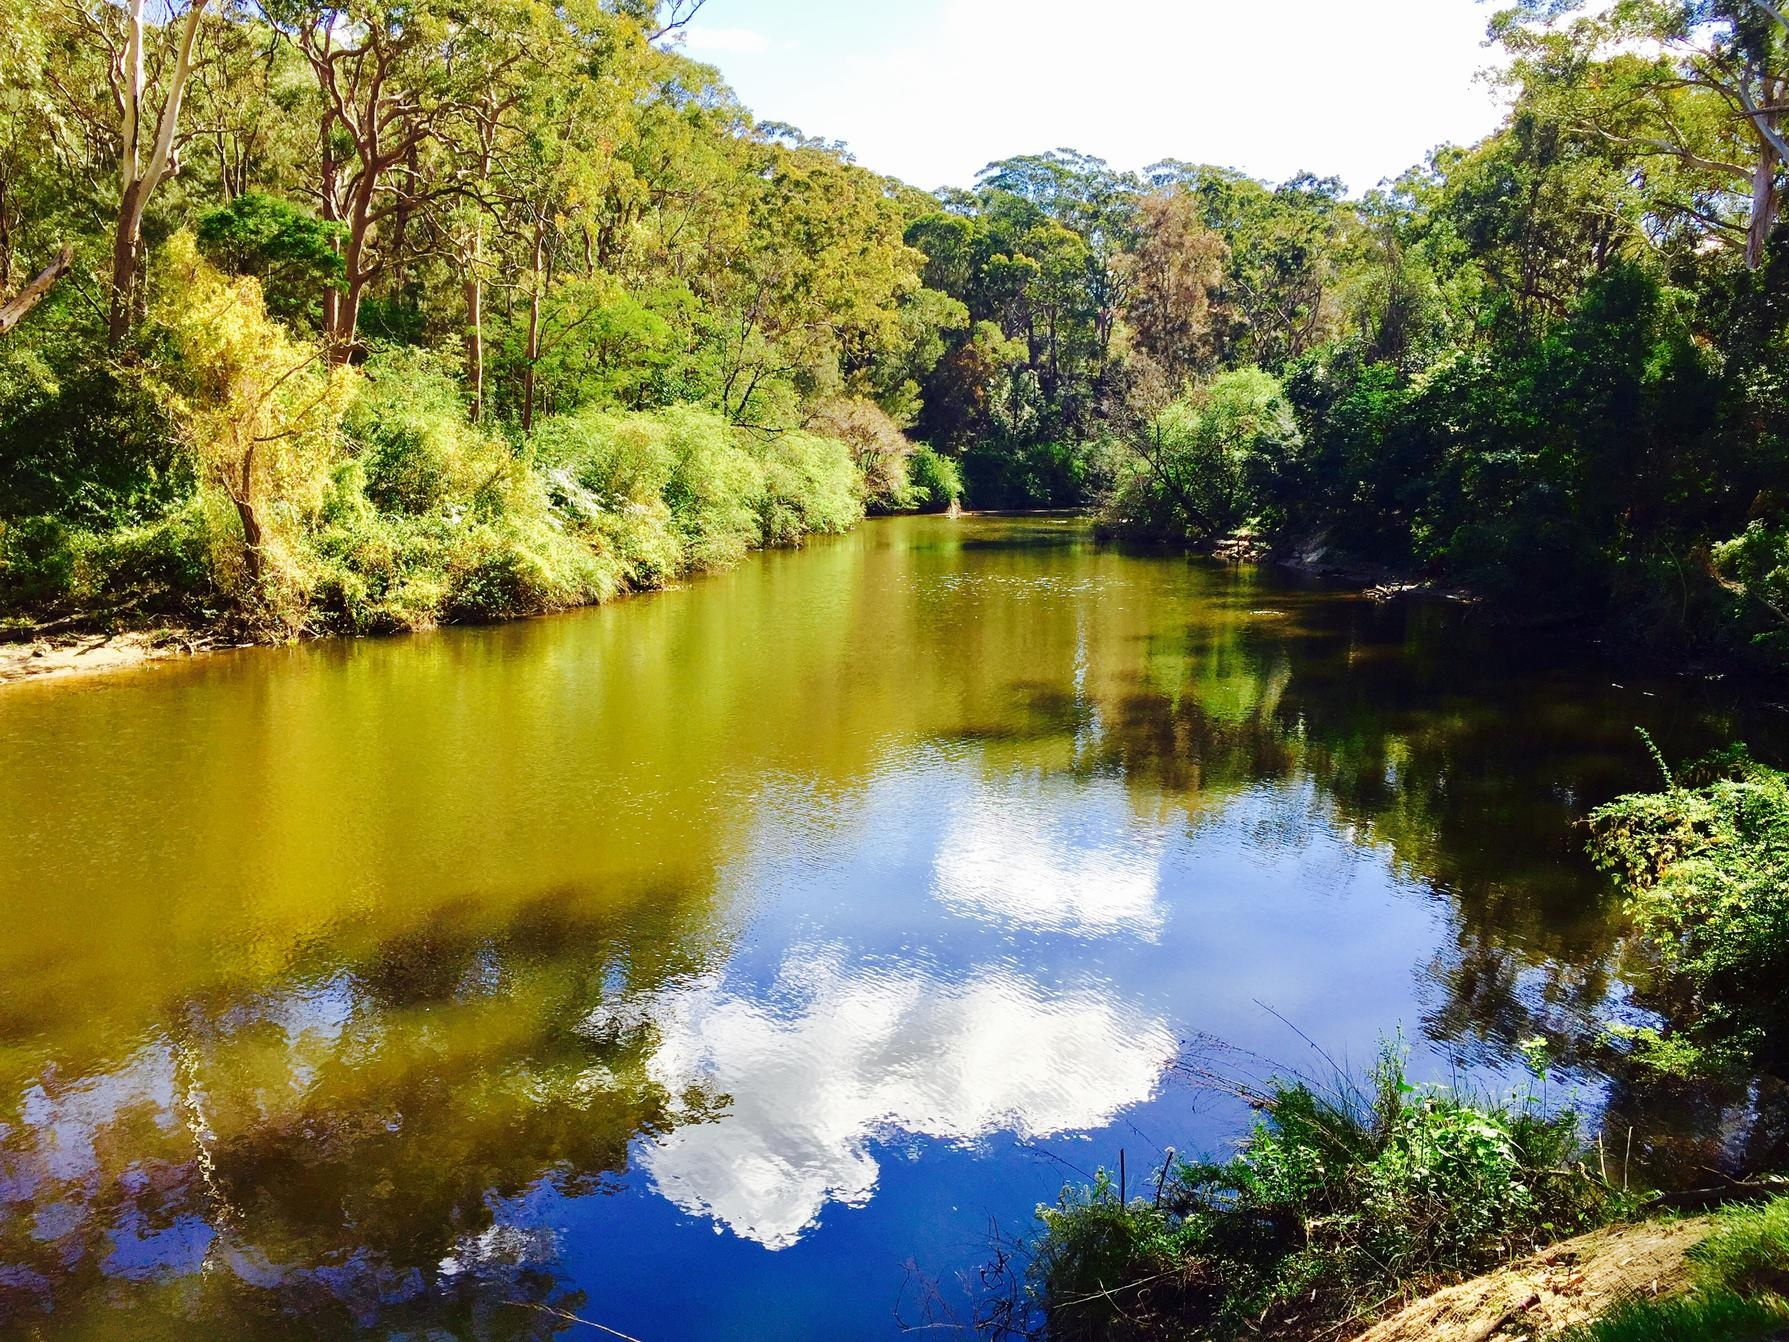 Lane Cove River View From The Wharf Site